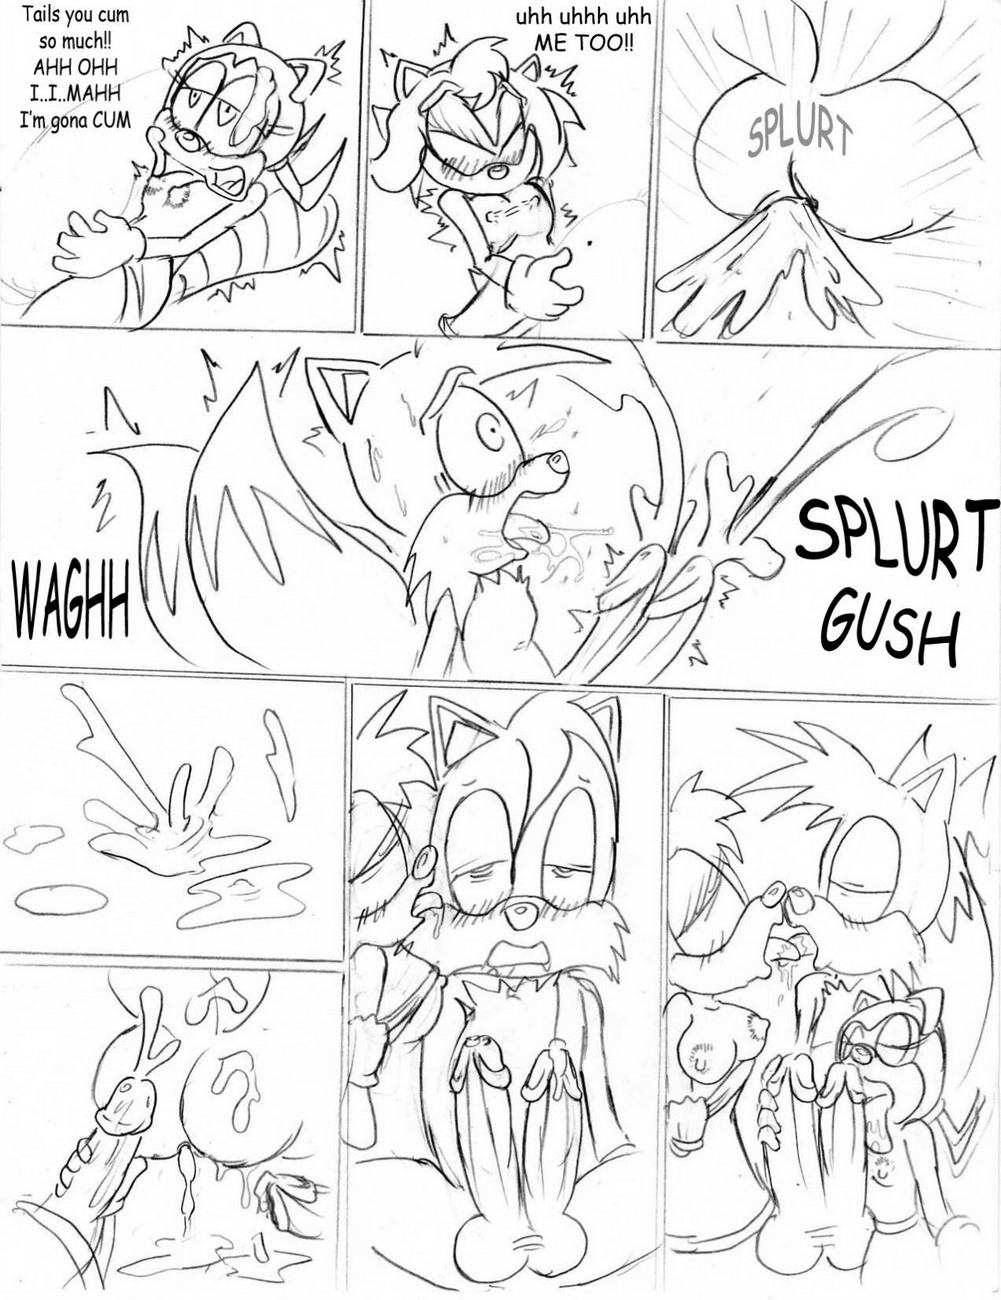 Tails\' Wake Up Call - part 2